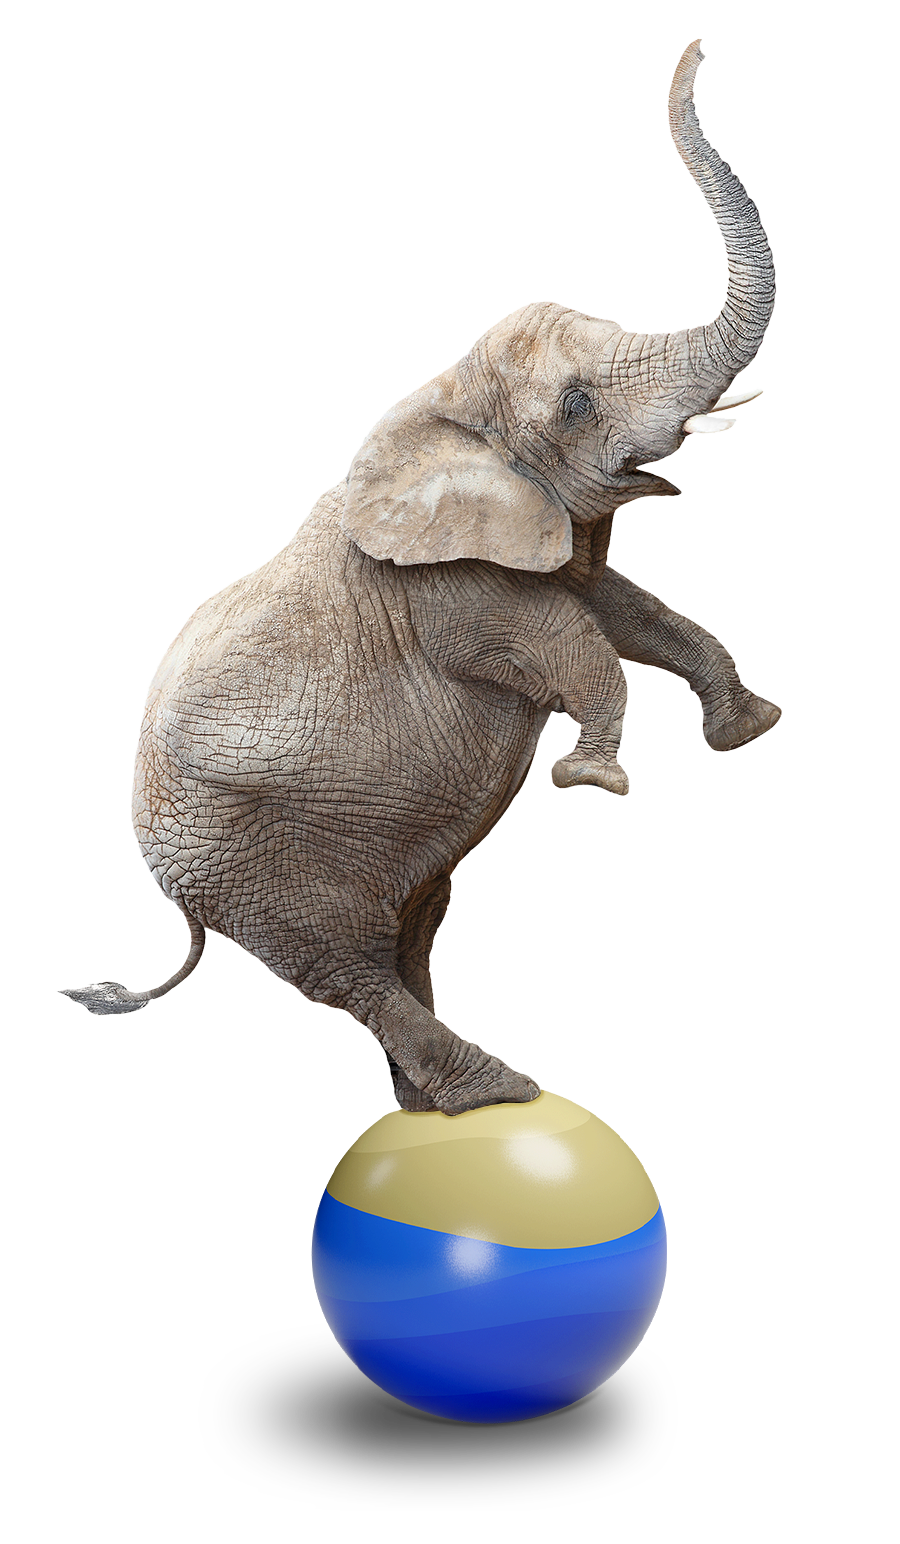 Brown Lawyers - Estate and Business Law - image of an elephant balancing on its back legs on a ball, symbolizing life in balance